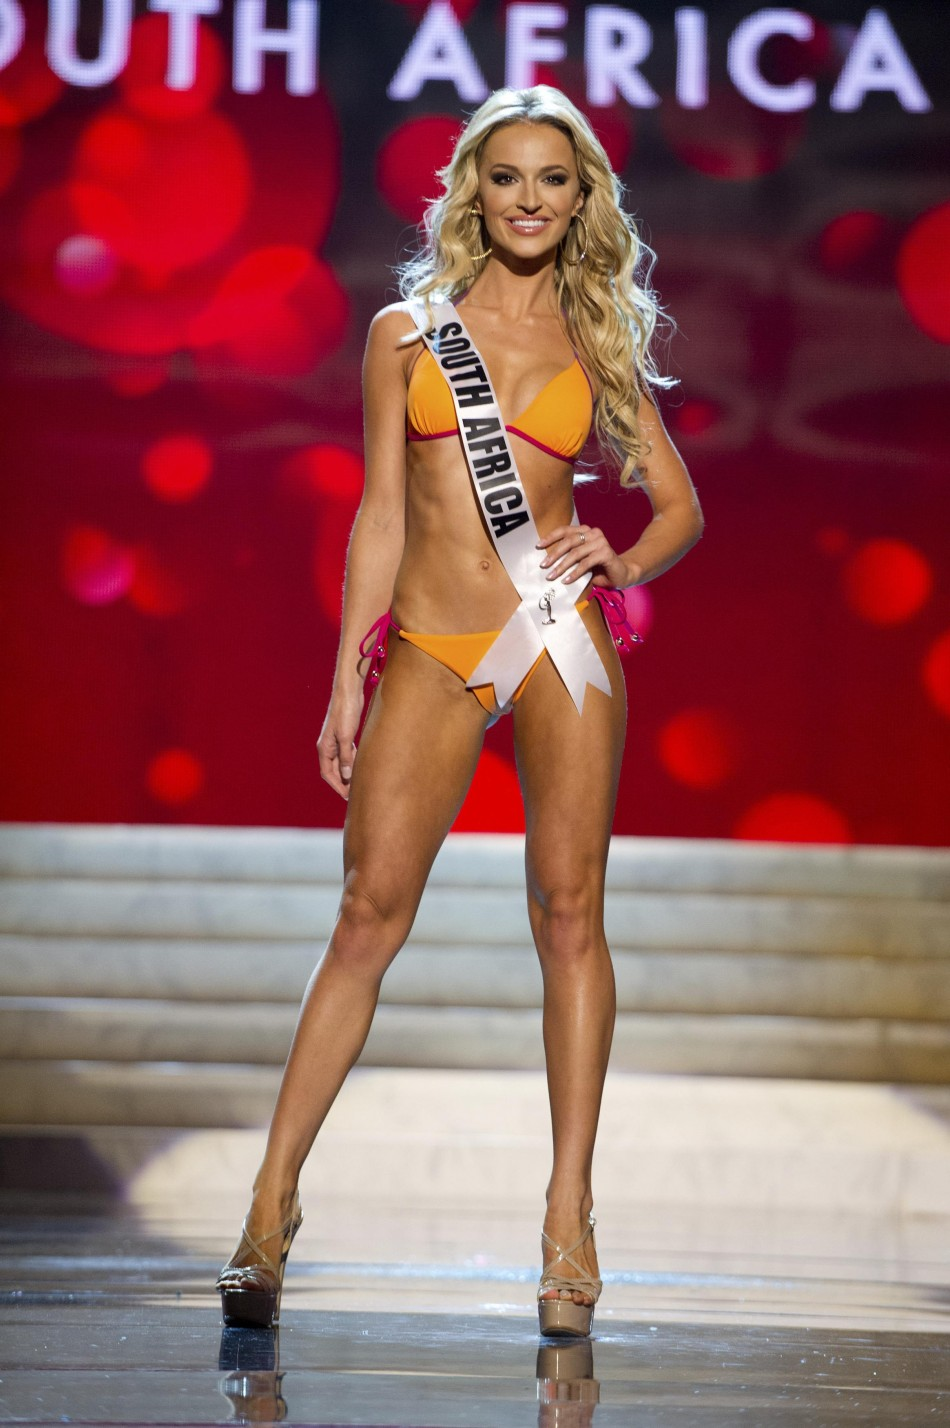 Miss South Africa Melinda Bam at the Swimsuit Competition of the 2012 Miss Universe Presentation Show at PH Live in Las Vegas